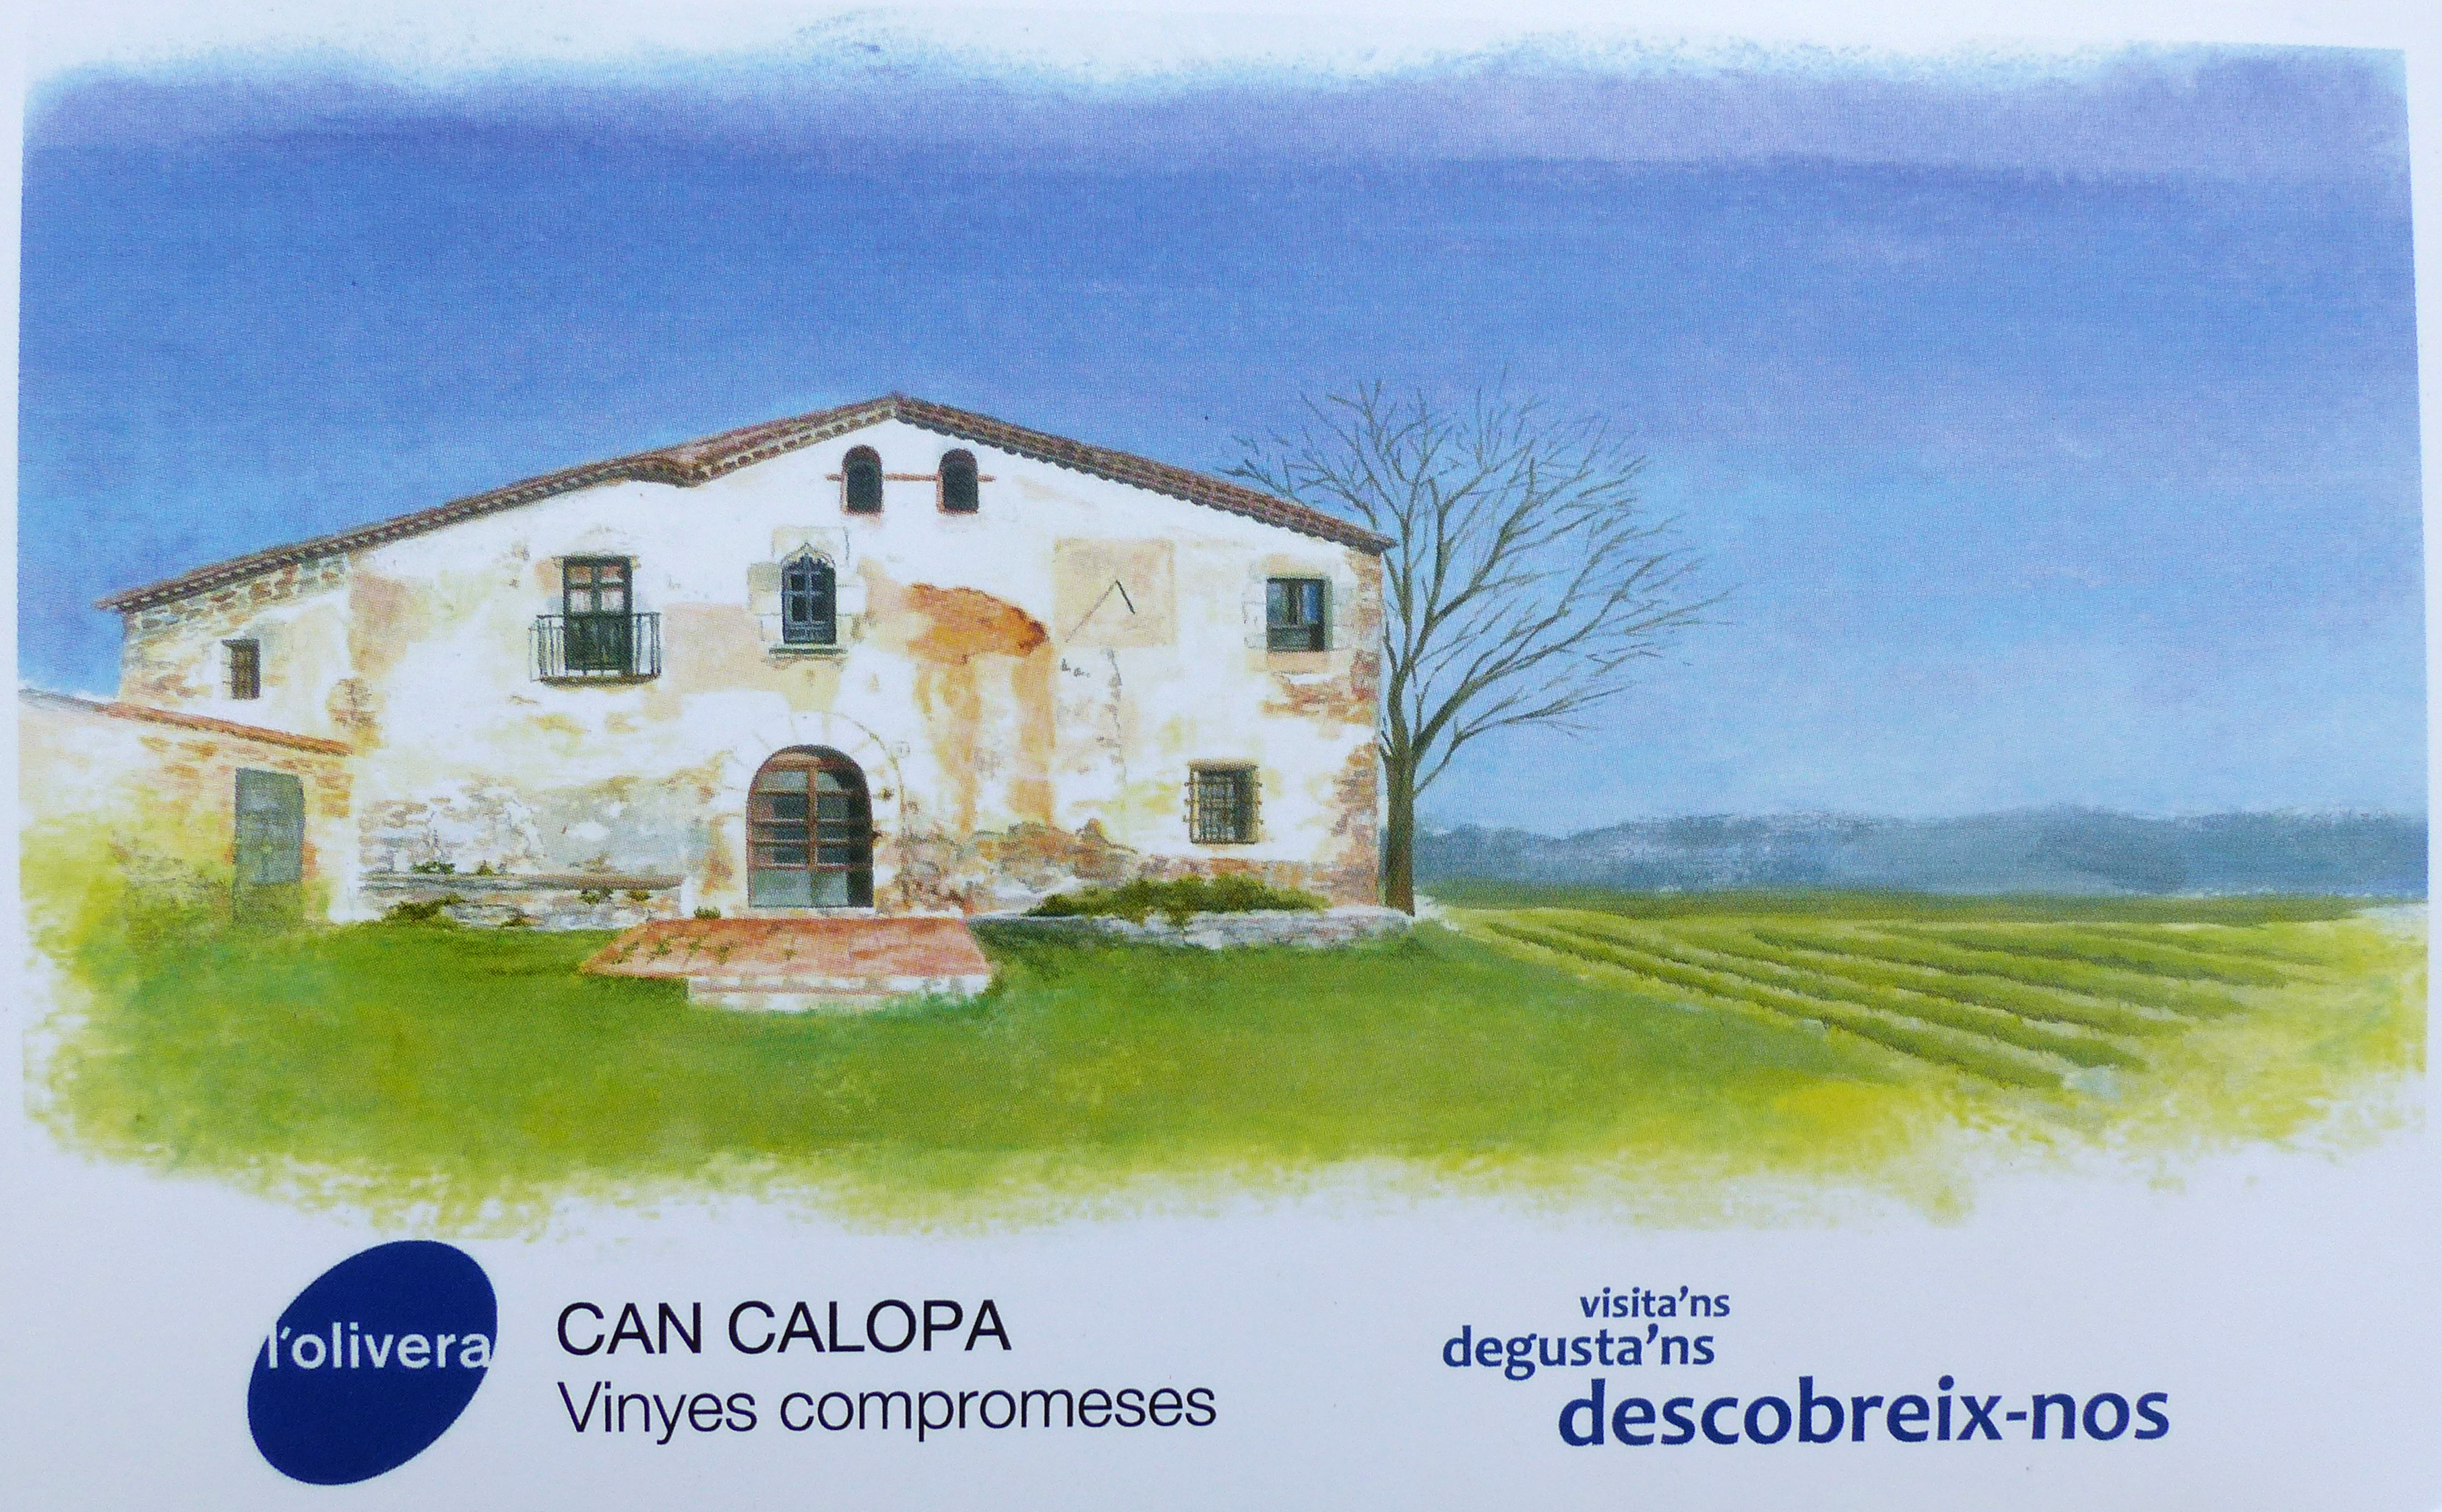 Image for leaflet for Can Calopa.